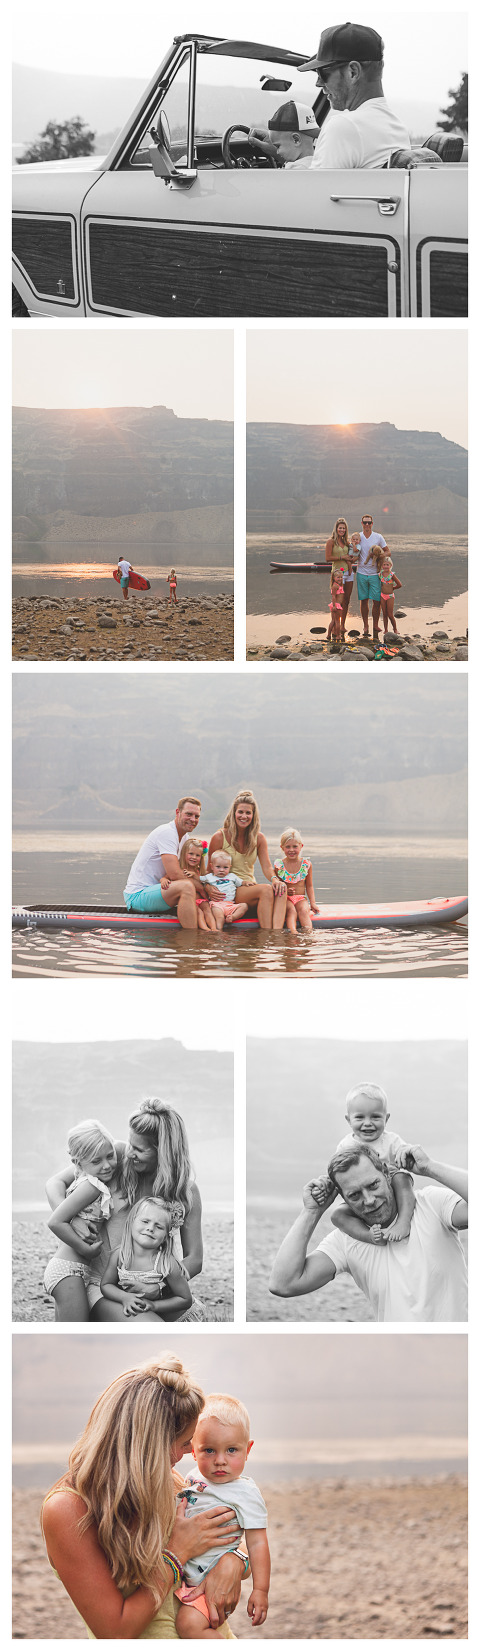 beach session with a scout, on a paddle board, Olson Family in Sunland, WA, lifestyle family session by Hailey Haberman